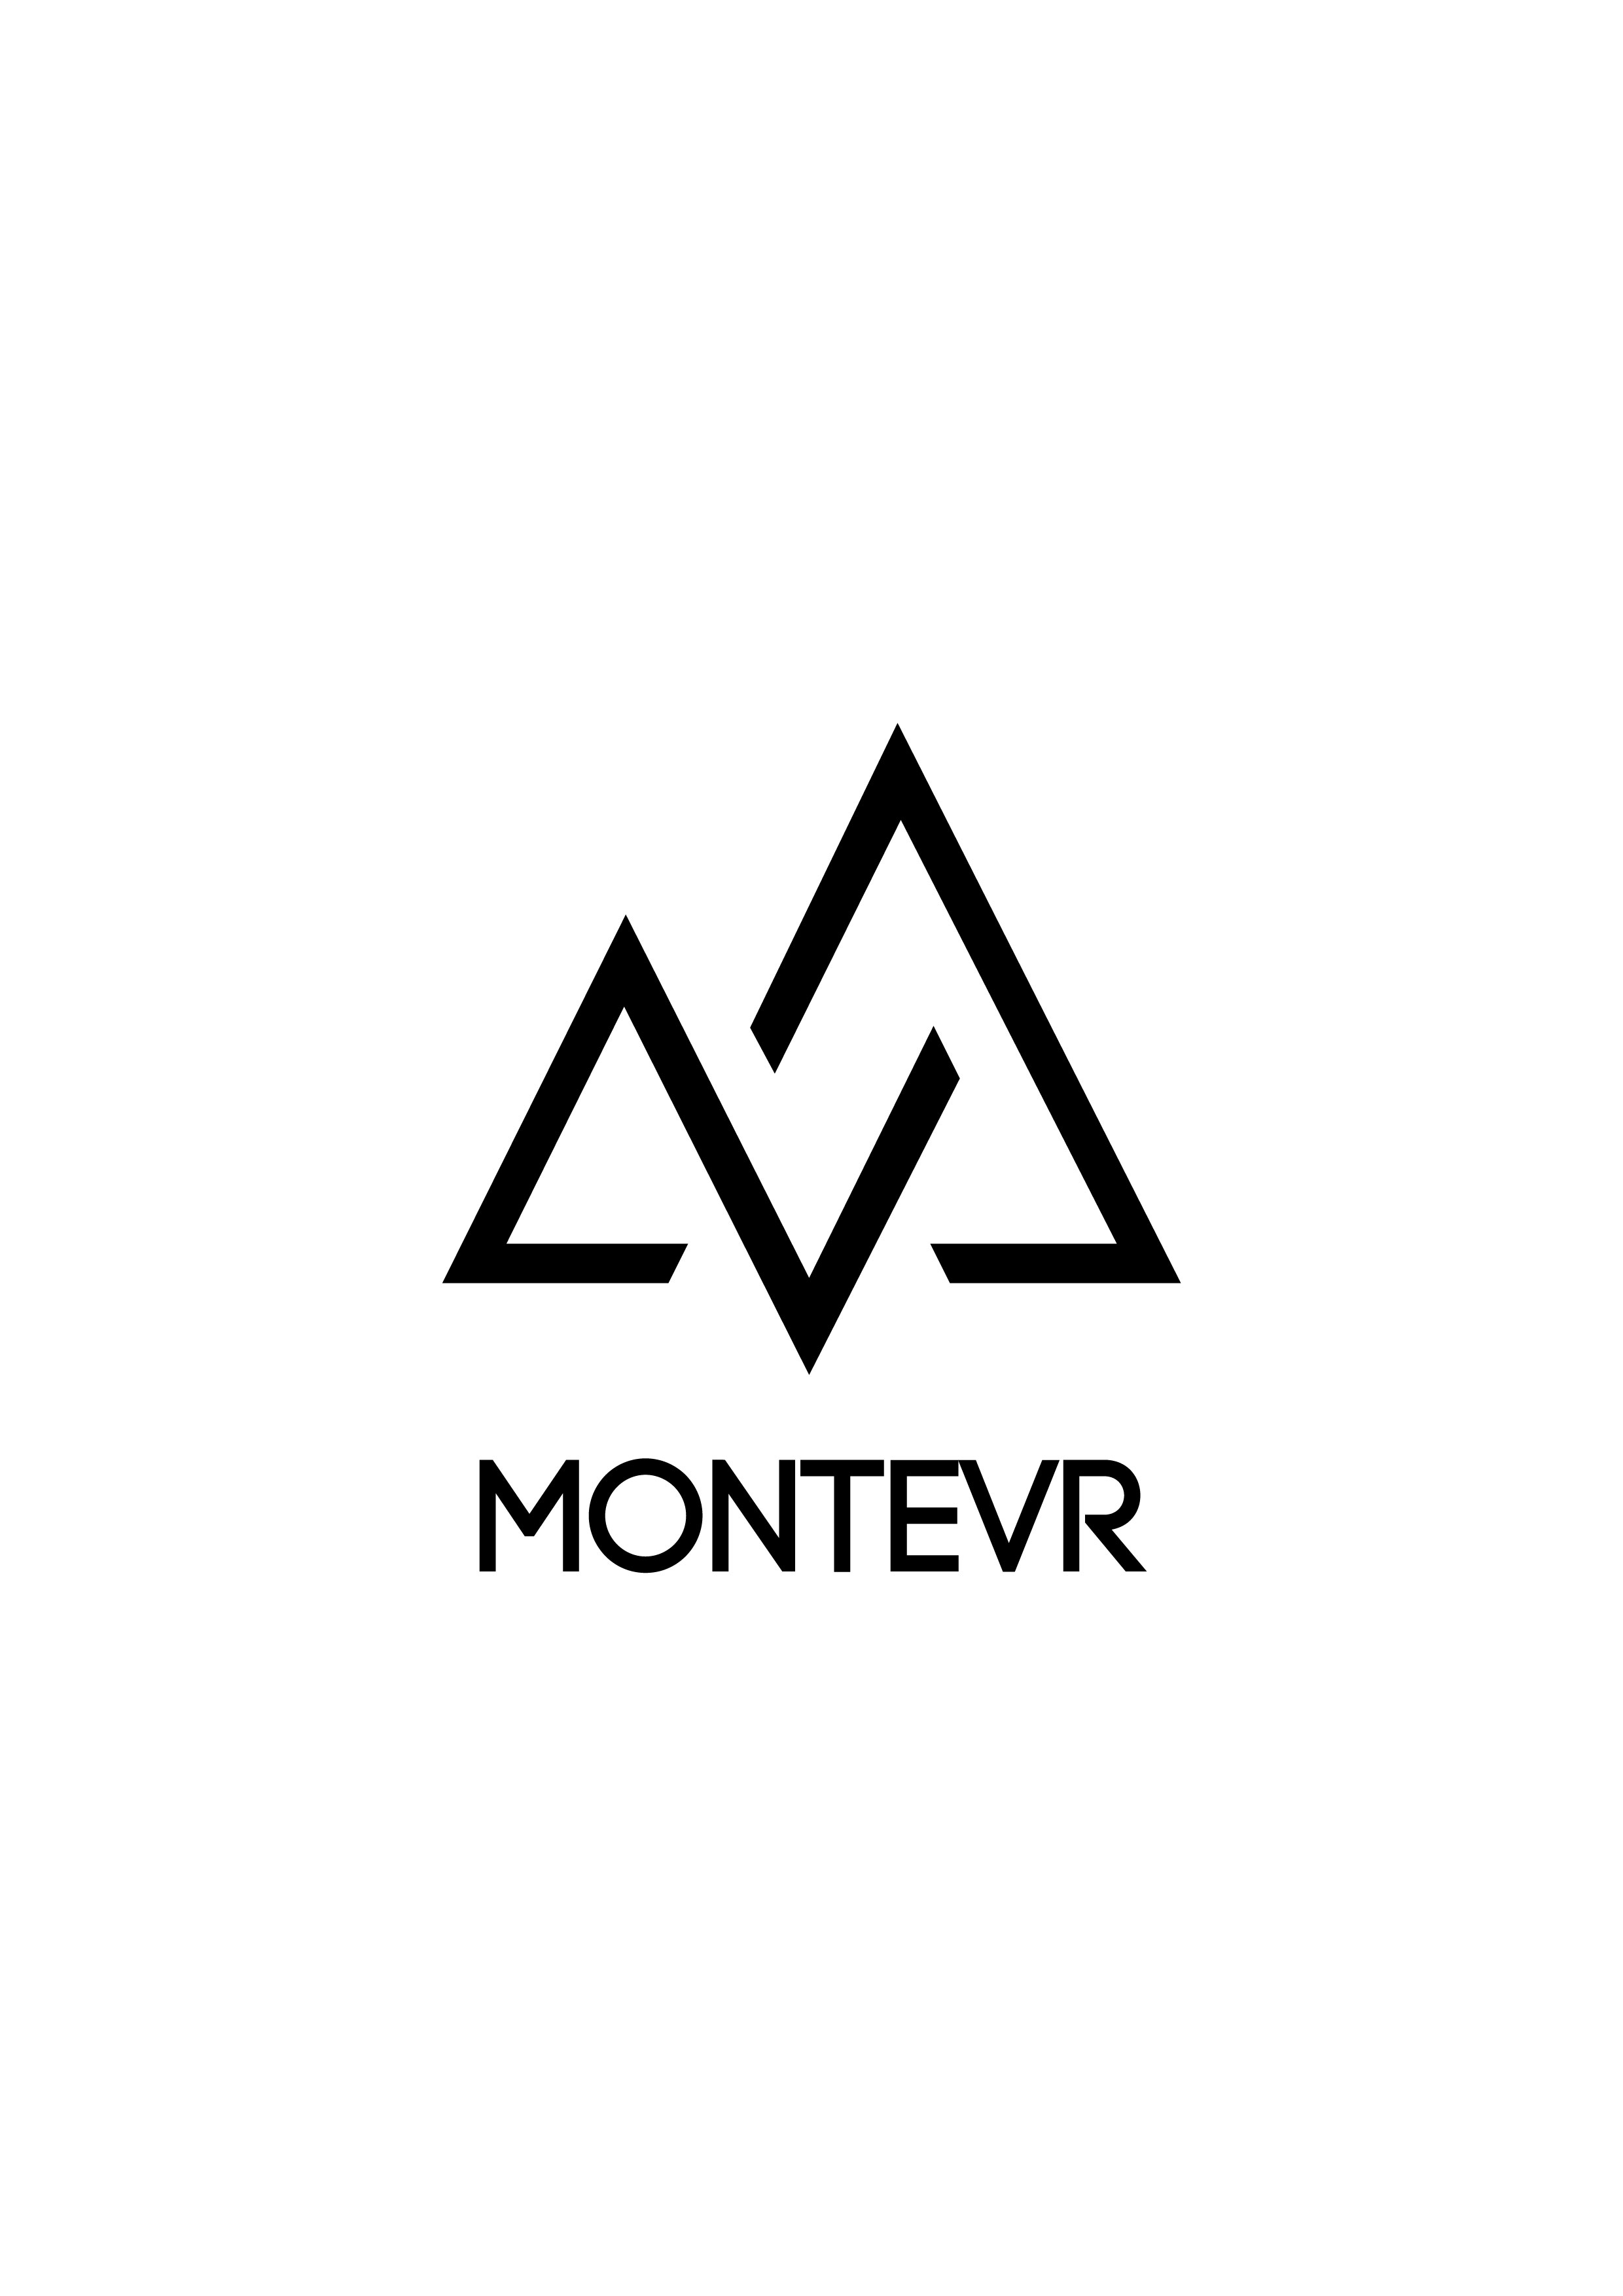 New series Montevr was born